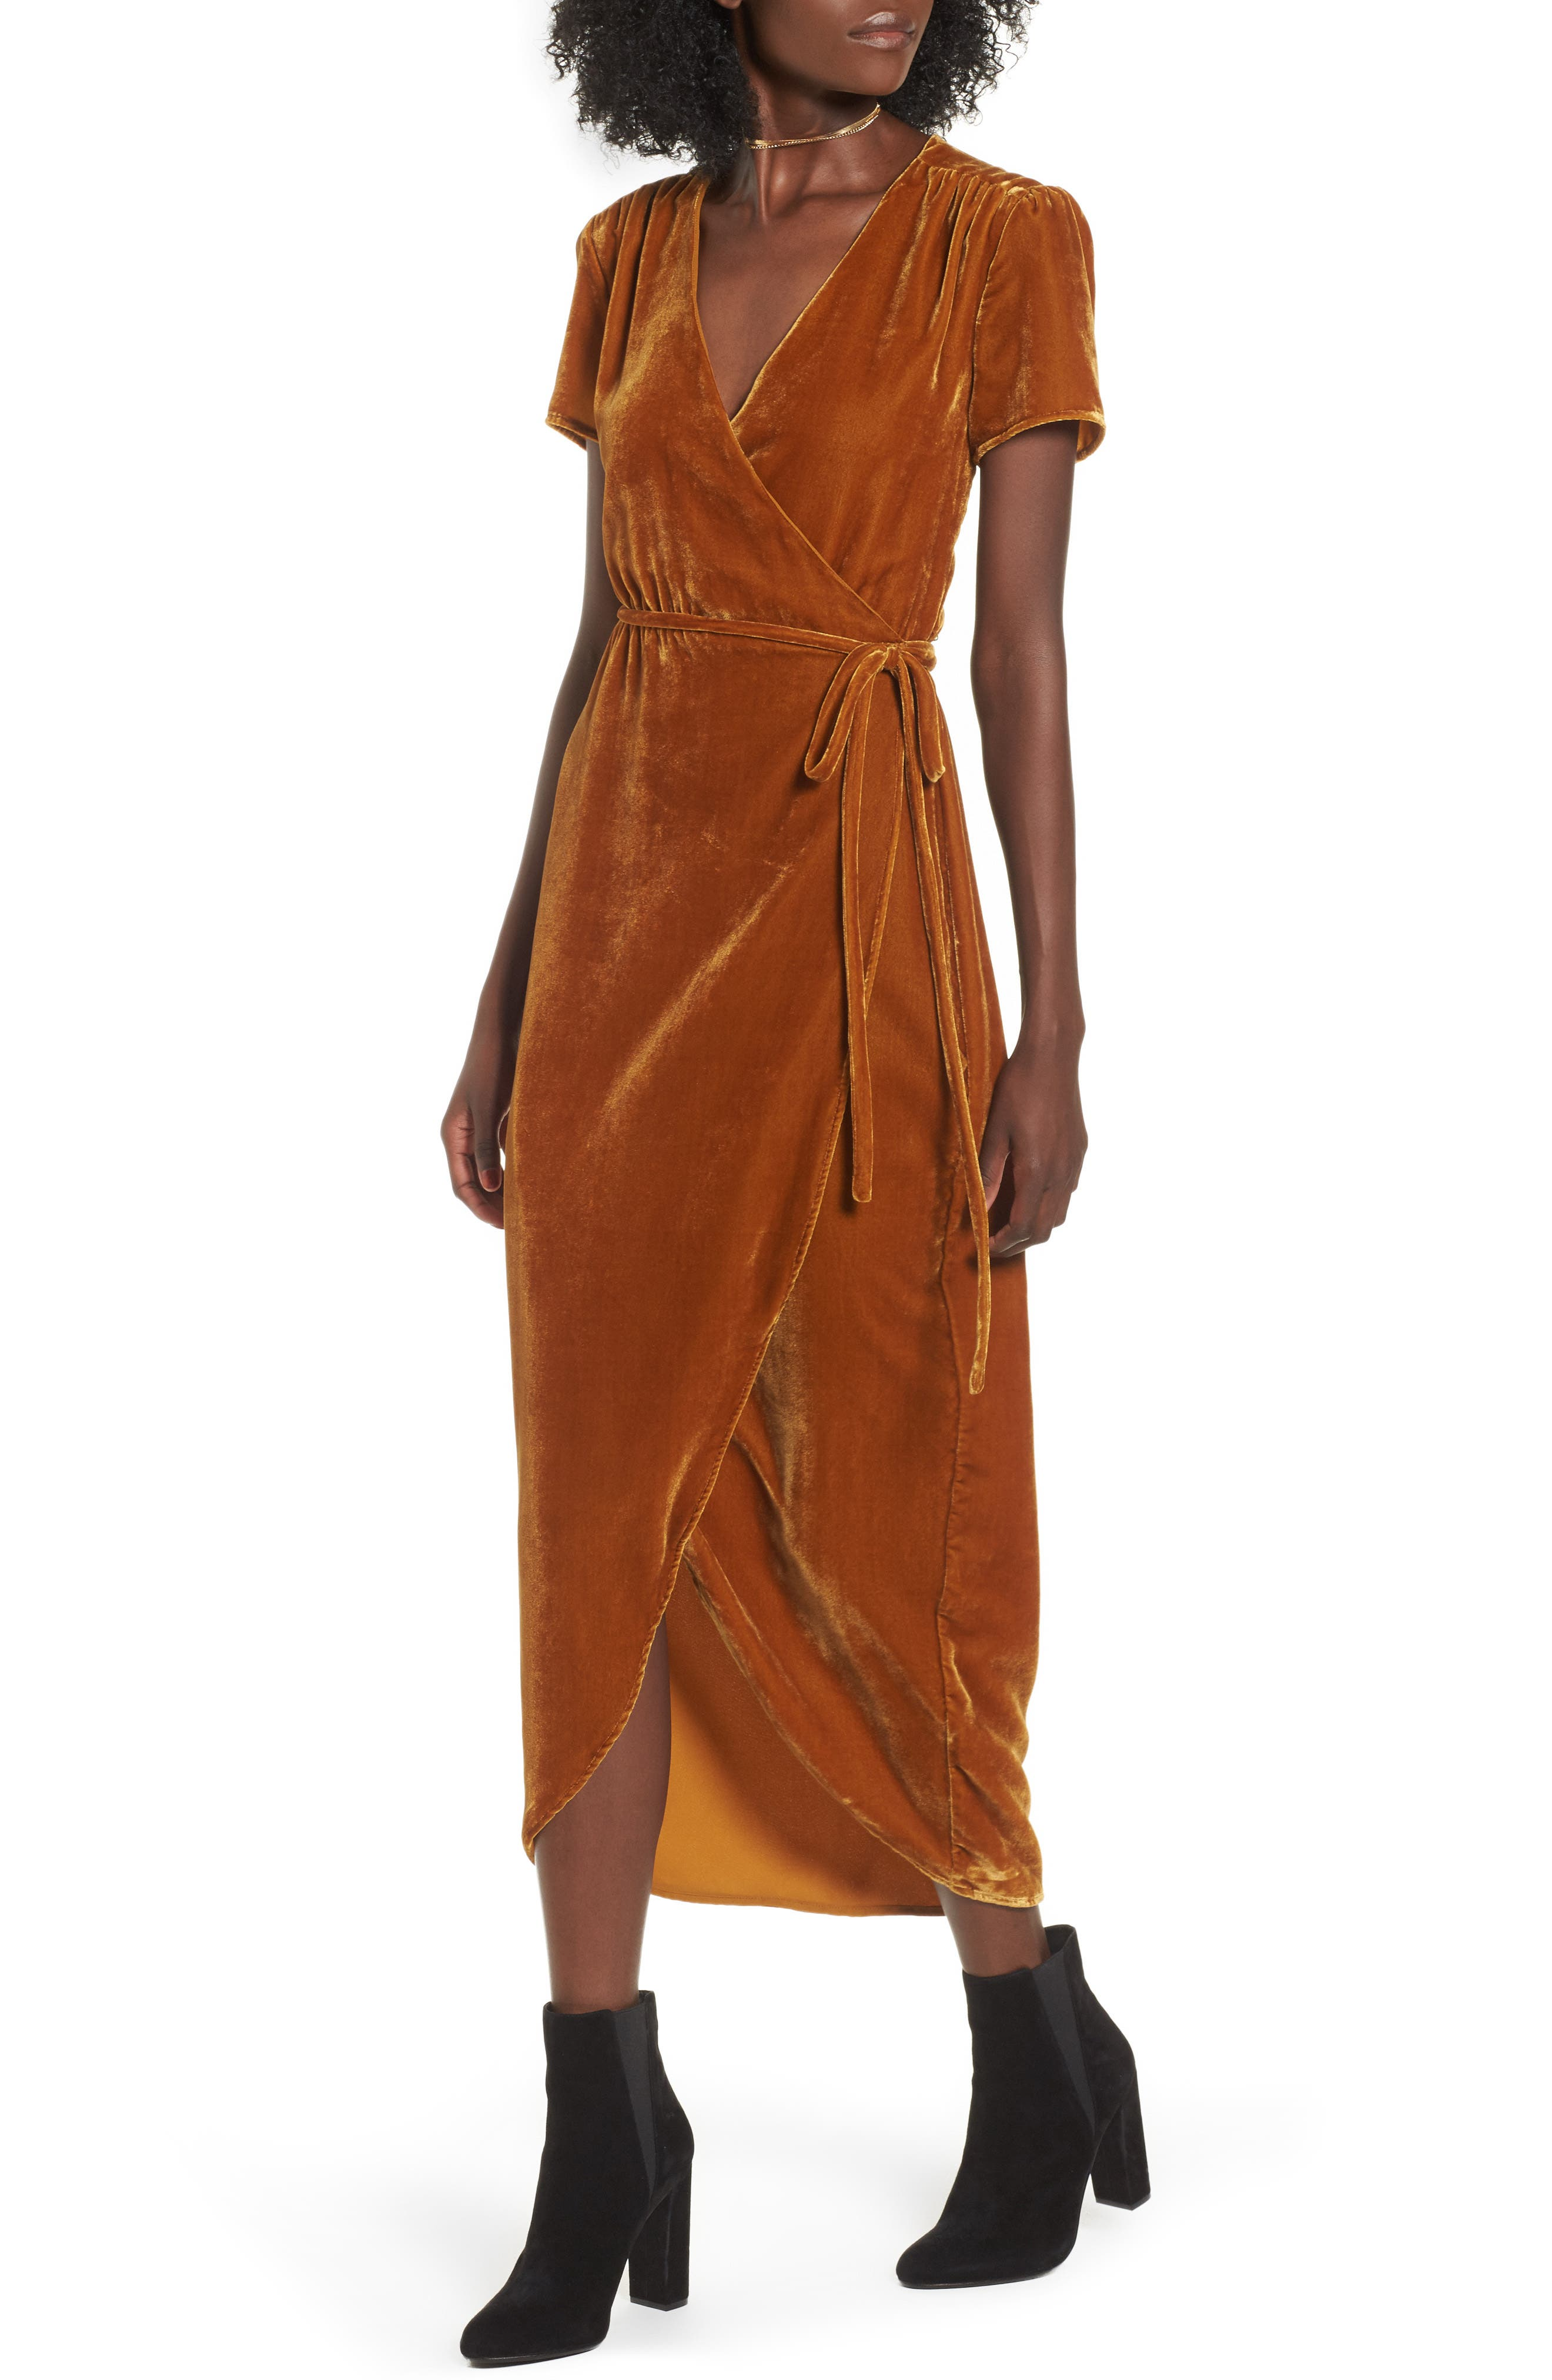 Alternate Image 1 Selected - WAYF Next to You Velvet Wrap Dress